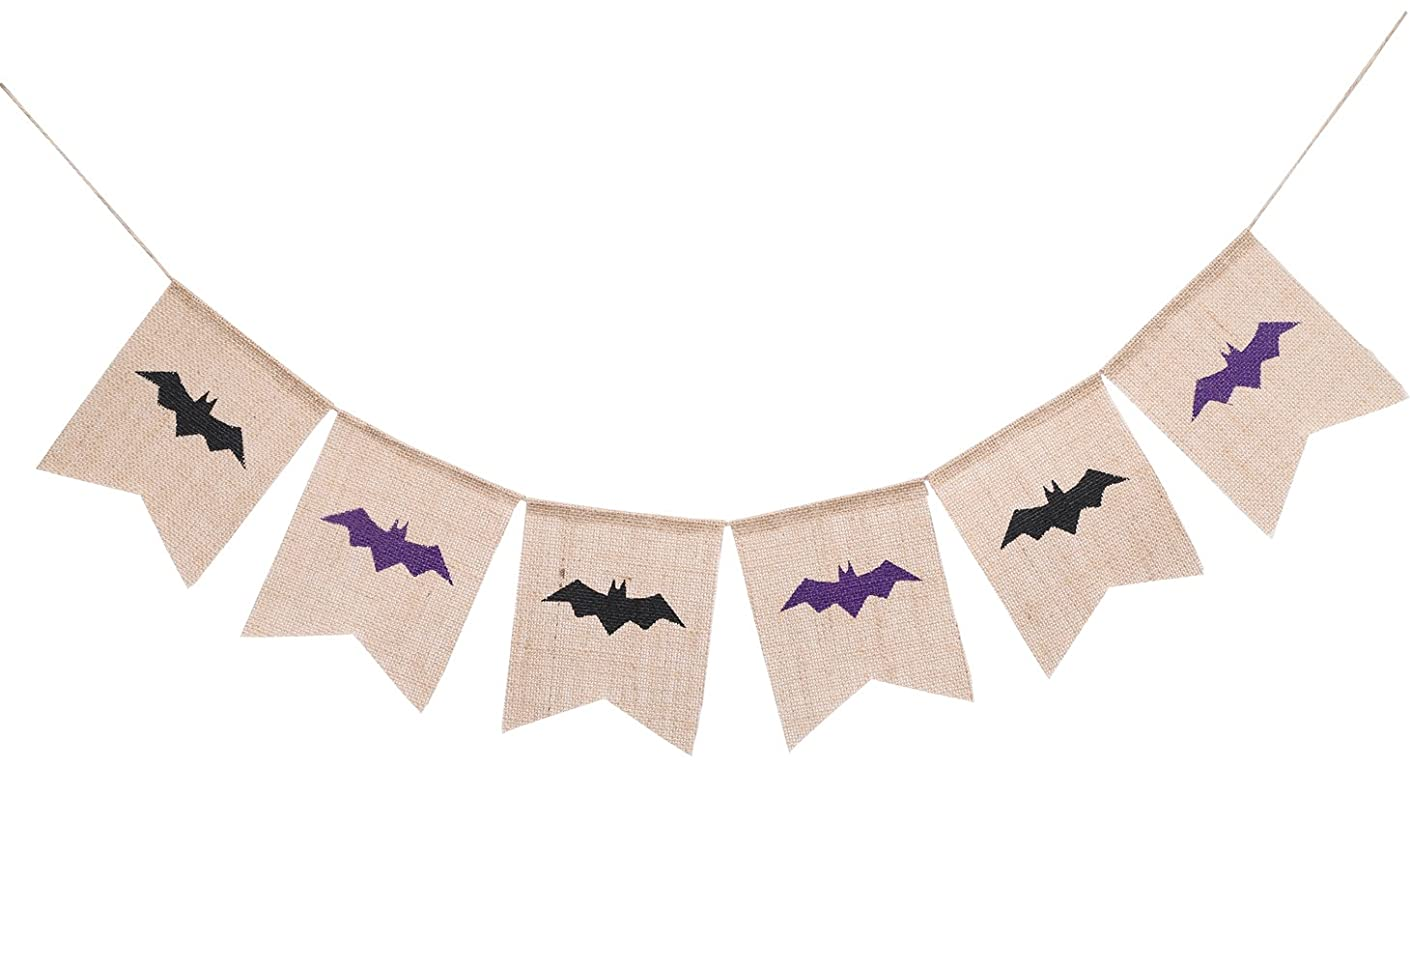 Bat Halloween Burlap Banner Garland for Home, School, Office, Party Decorations Wall Décor Hanging Photo Props Bunting Sign